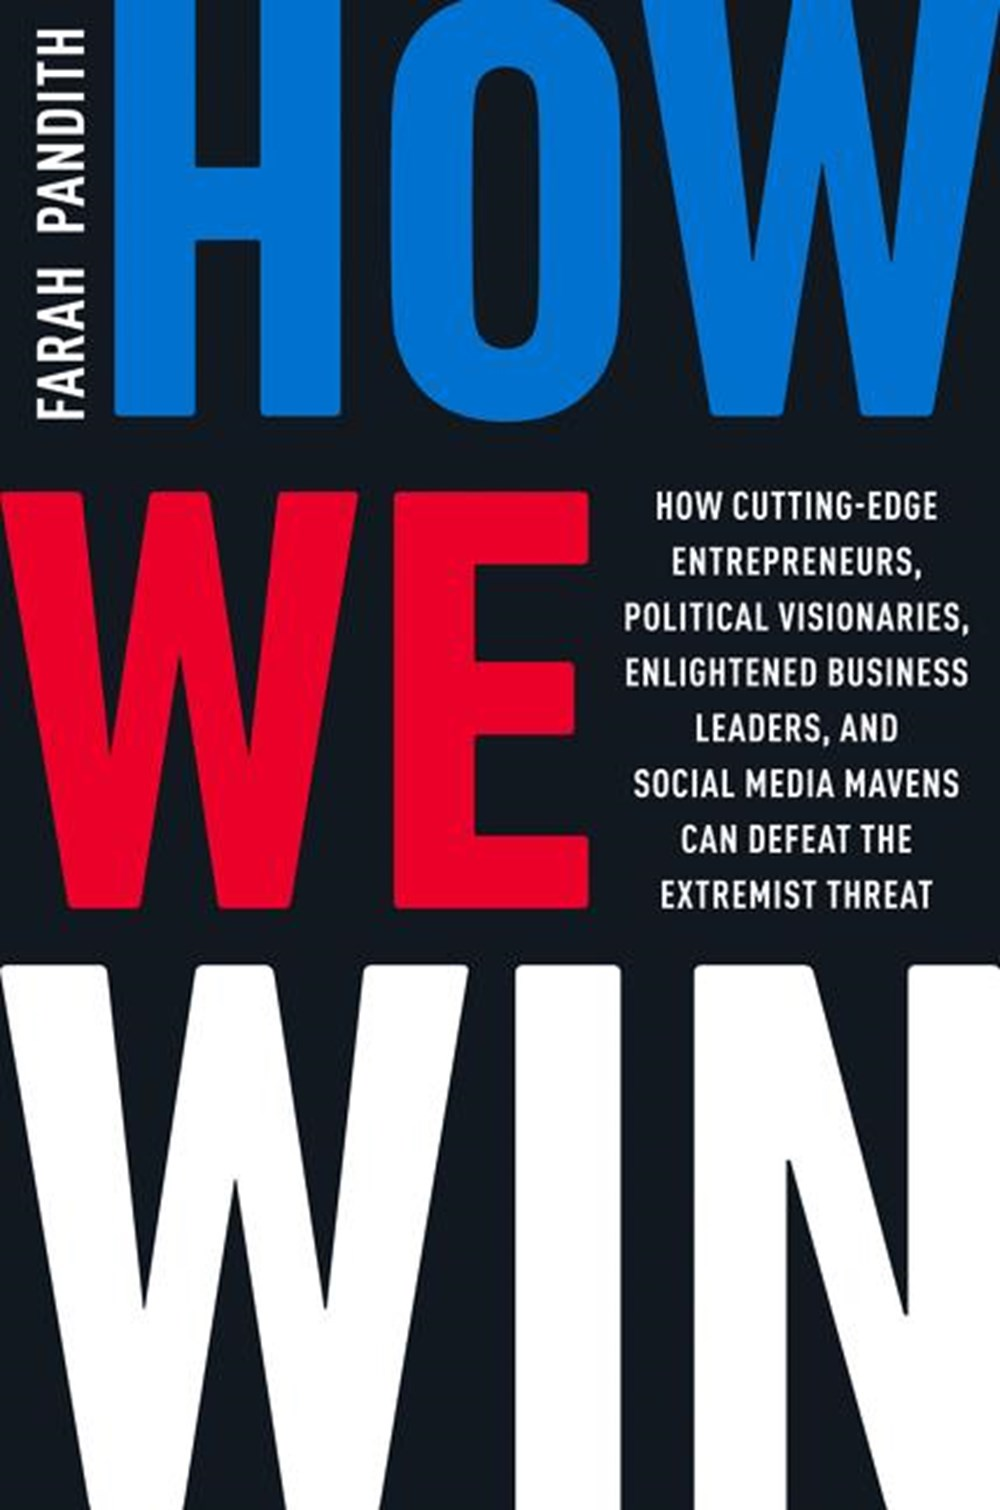 How We Win How Cutting-Edge Entrepreneurs, Political Visionaries, Enlightened Business Leaders, and